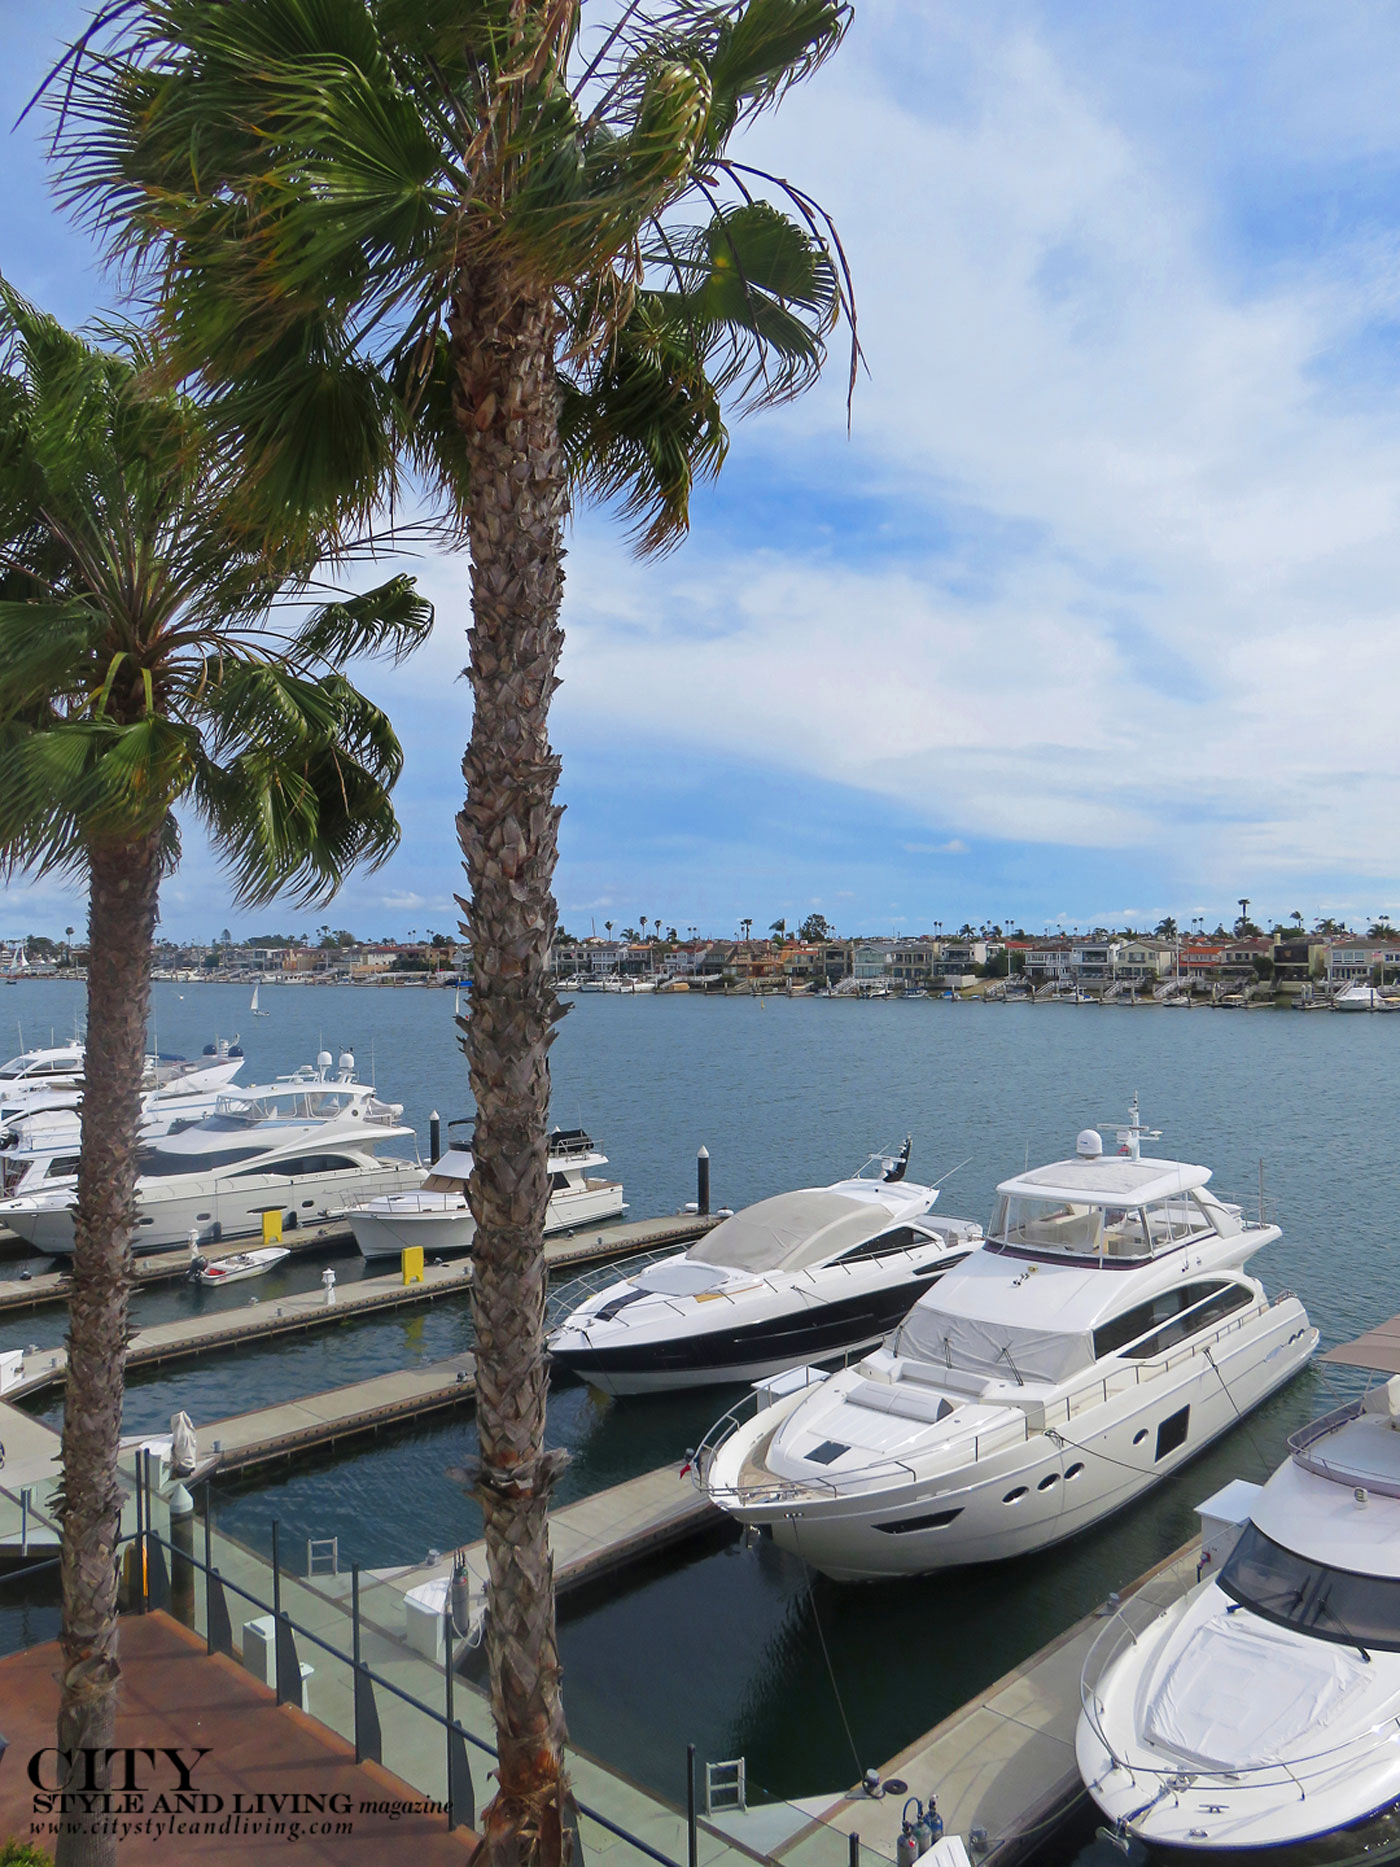 City Style and Living Magazine Summer 2019 Southern California Hollwood Temecula Newport Beach balboa bay resort boats